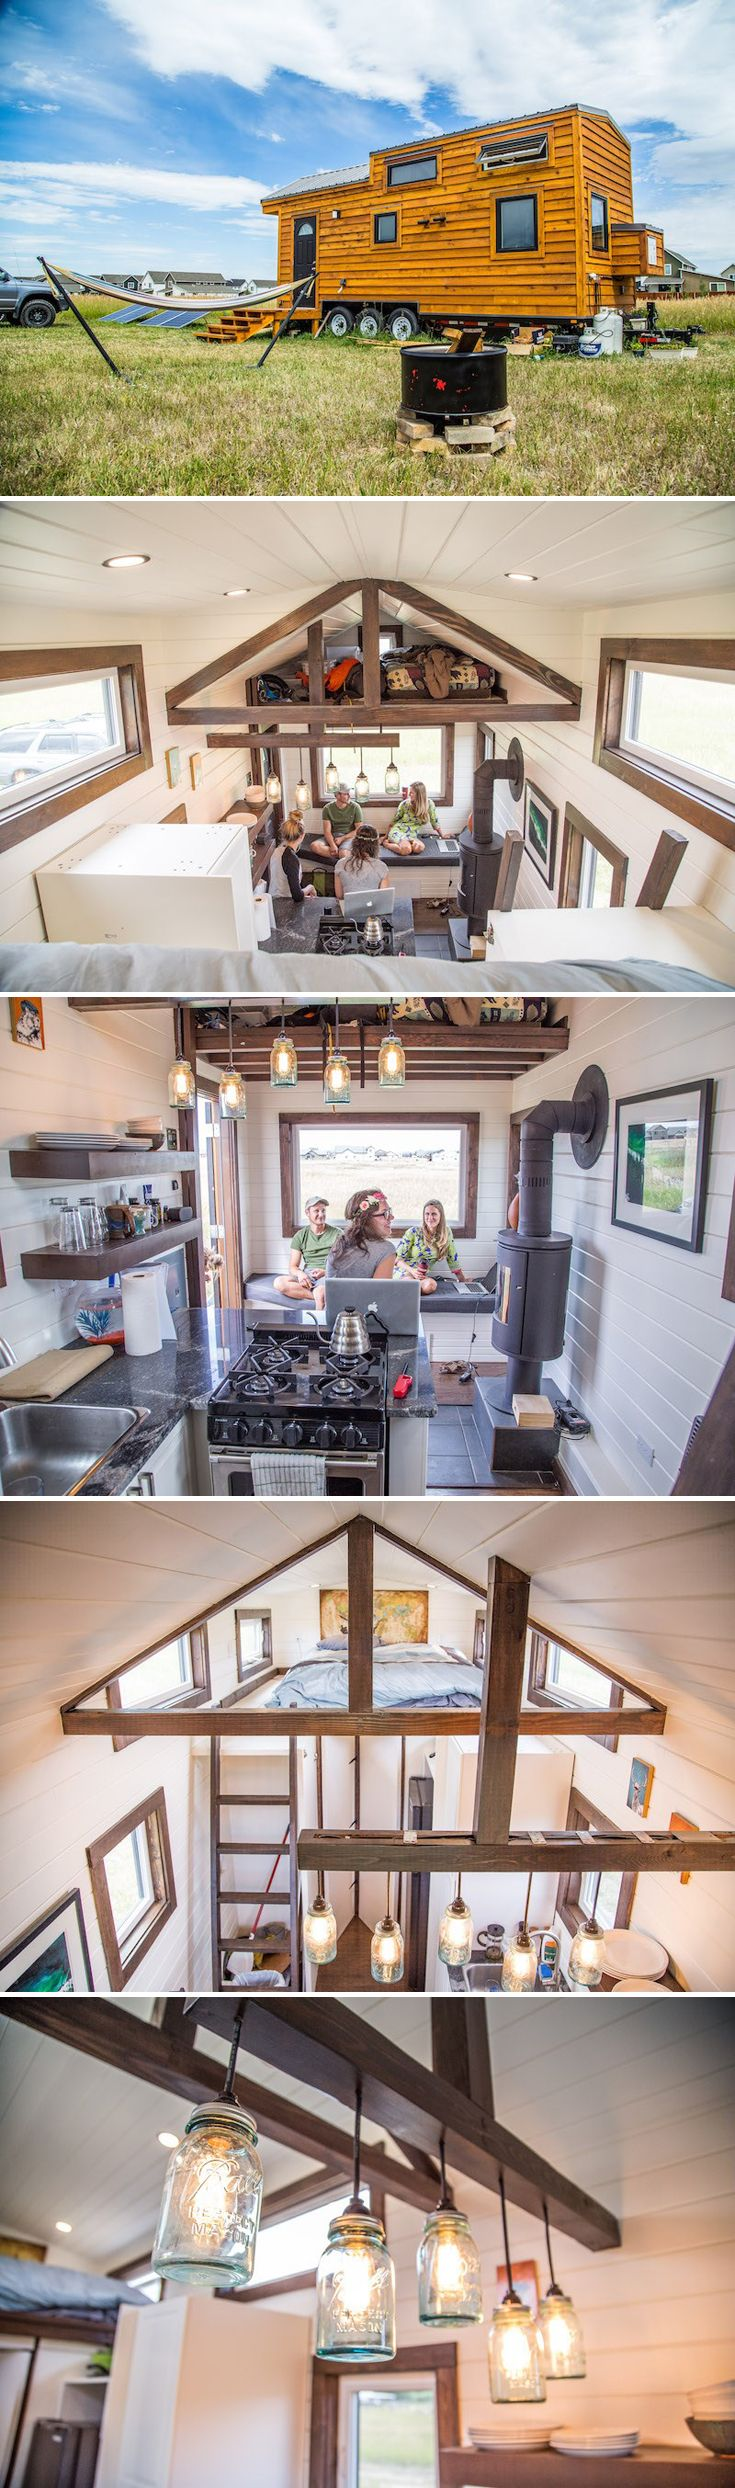 This 280-square-foot tiny house is ready for off-grid living with its solar panel system, 50-gallon fresh water tank, propane appliances, and a composting toilet.